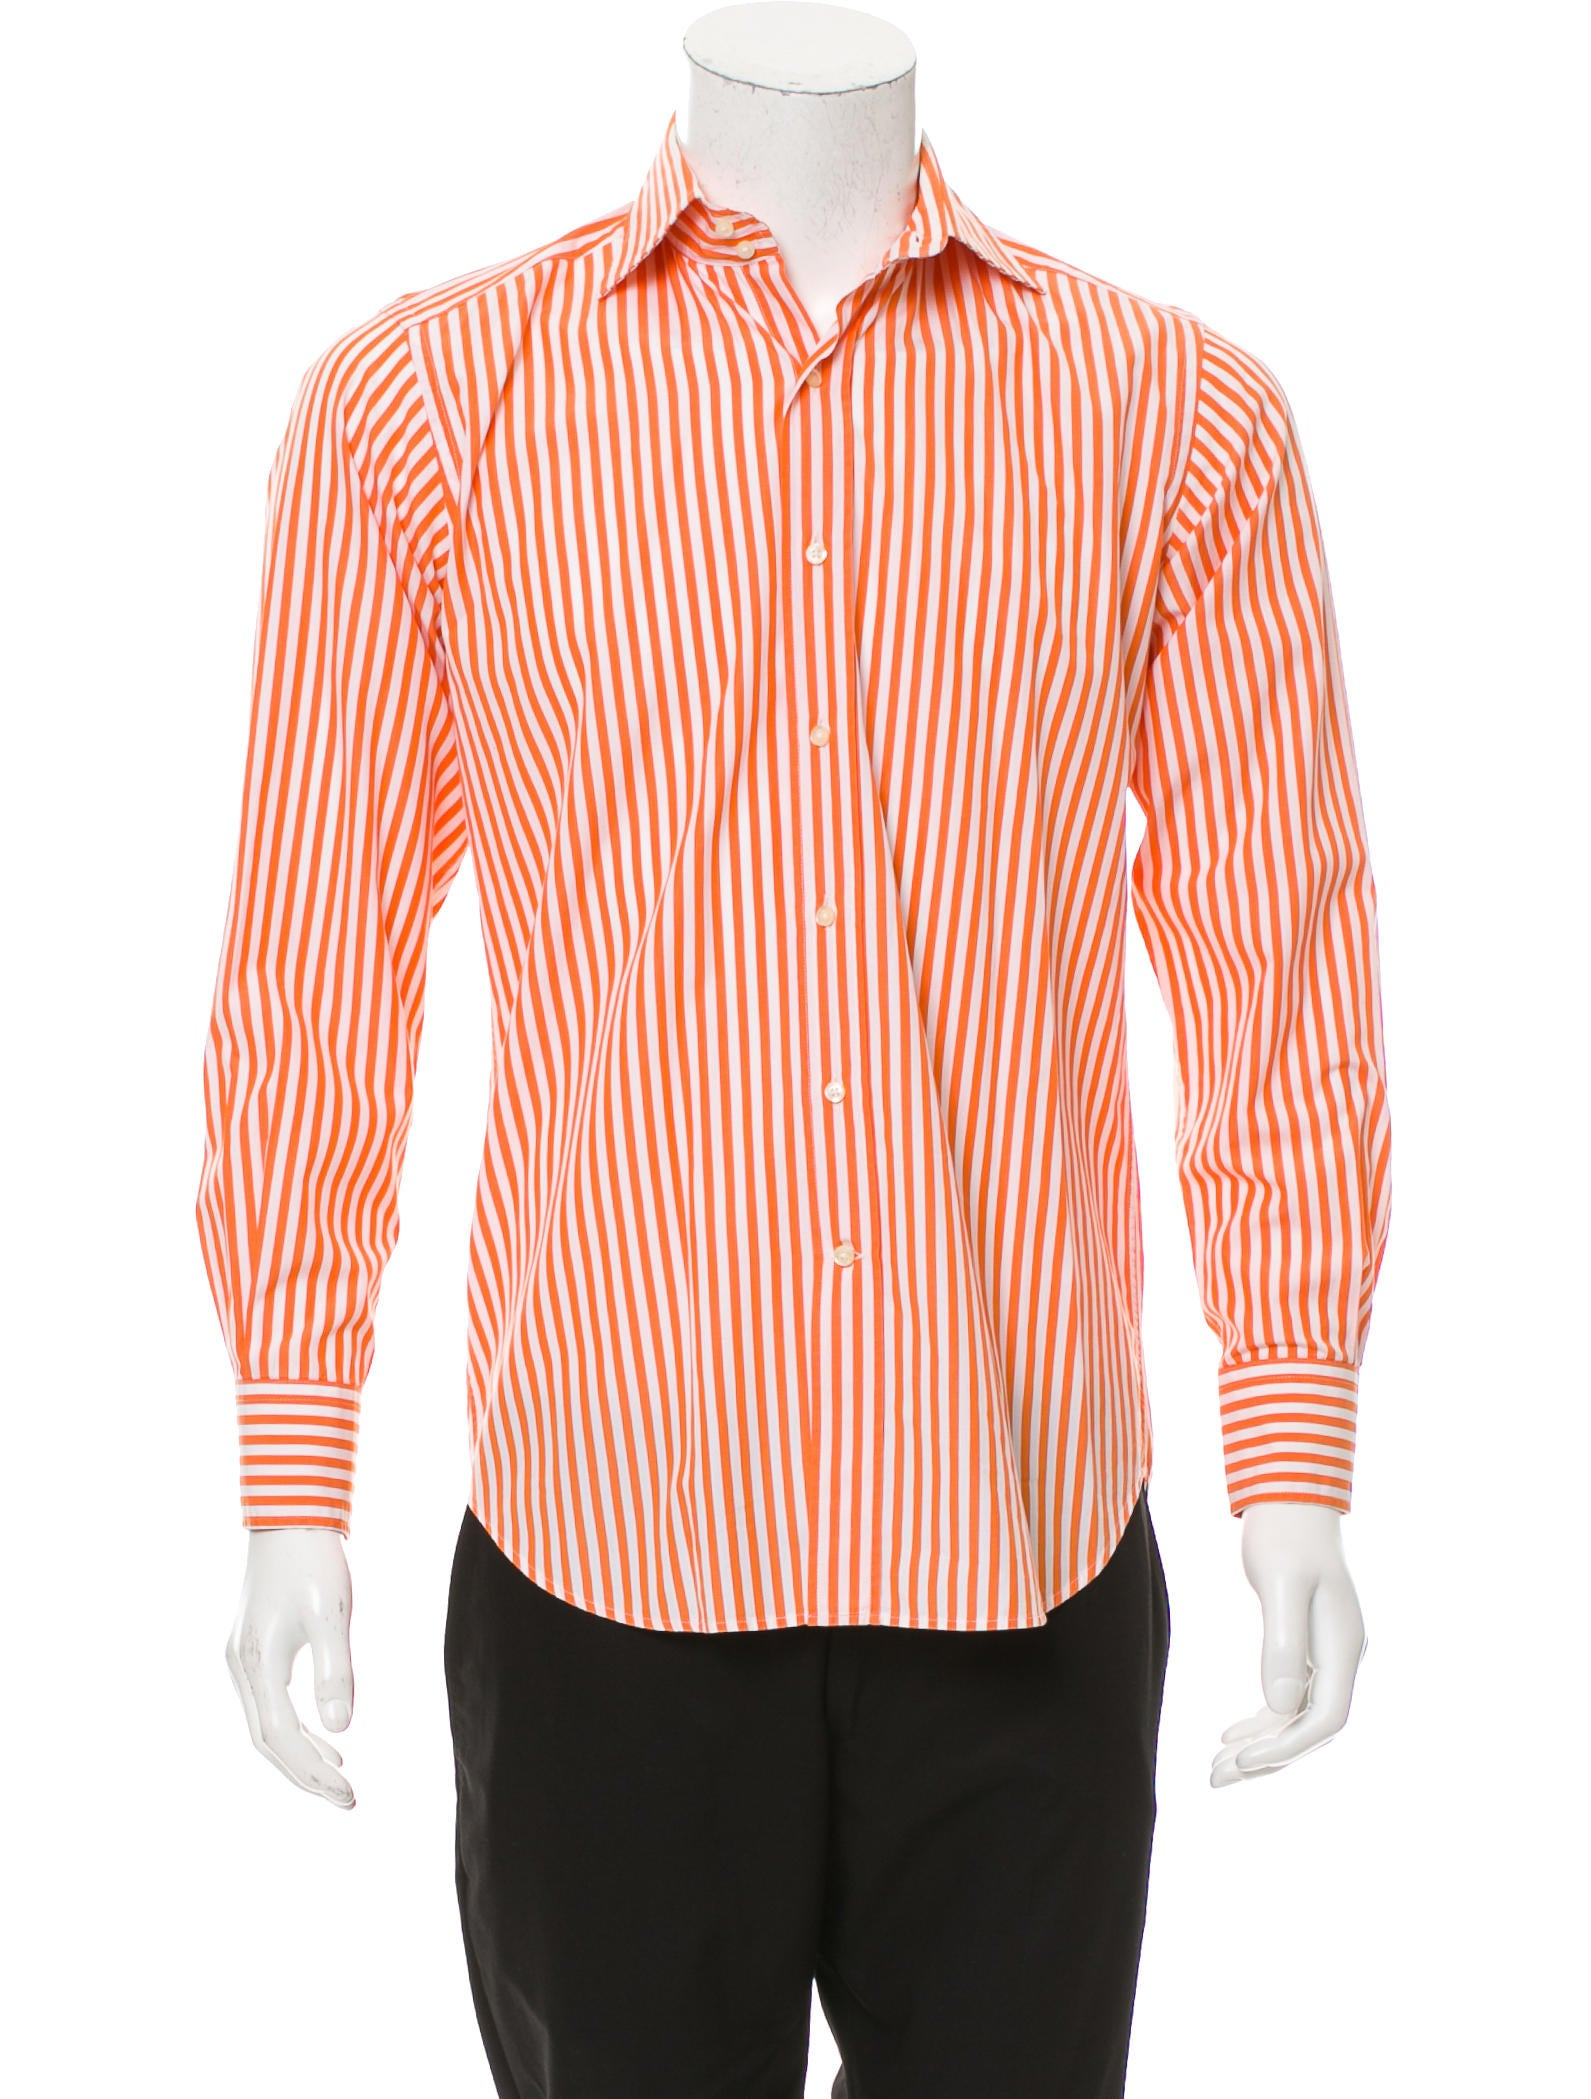 Etro striped button up shirt clothing etr48929 the for Striped button up shirt mens